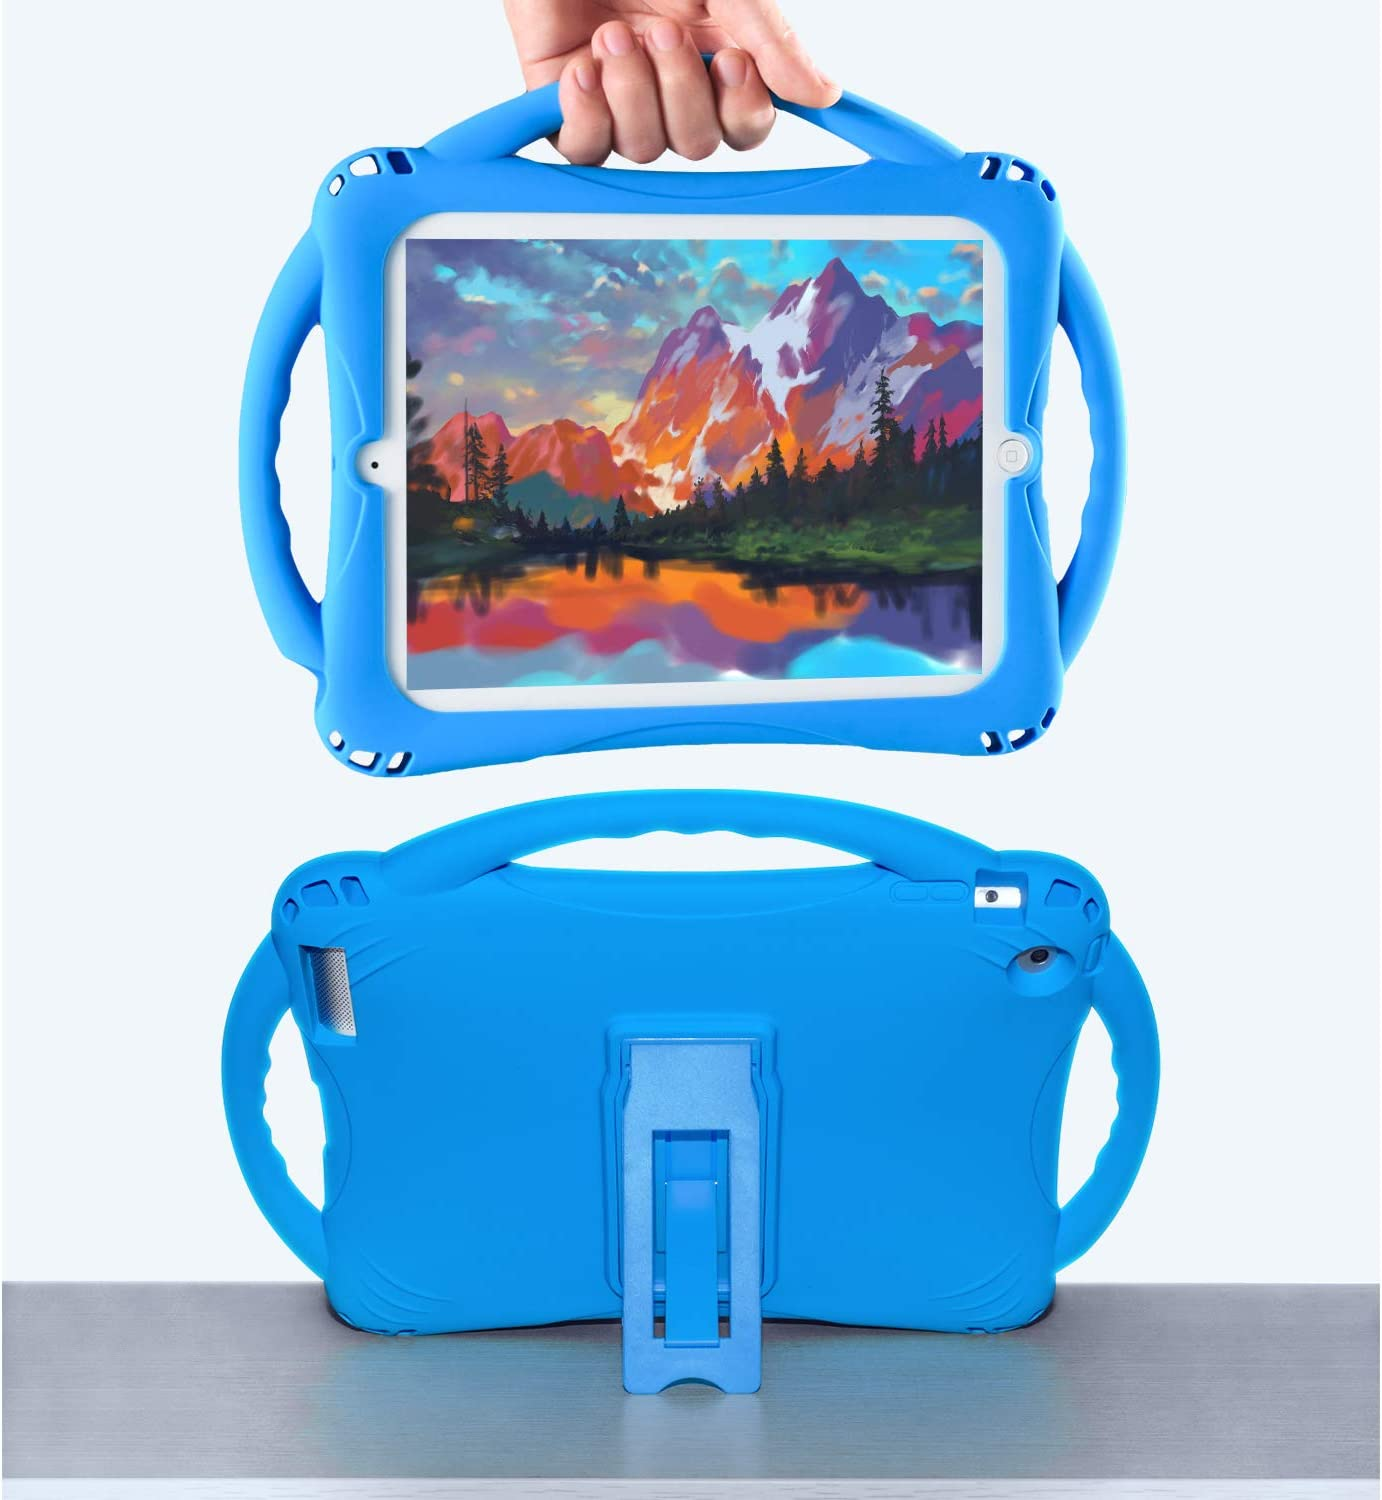 TopEsct Ipad Cover For kids